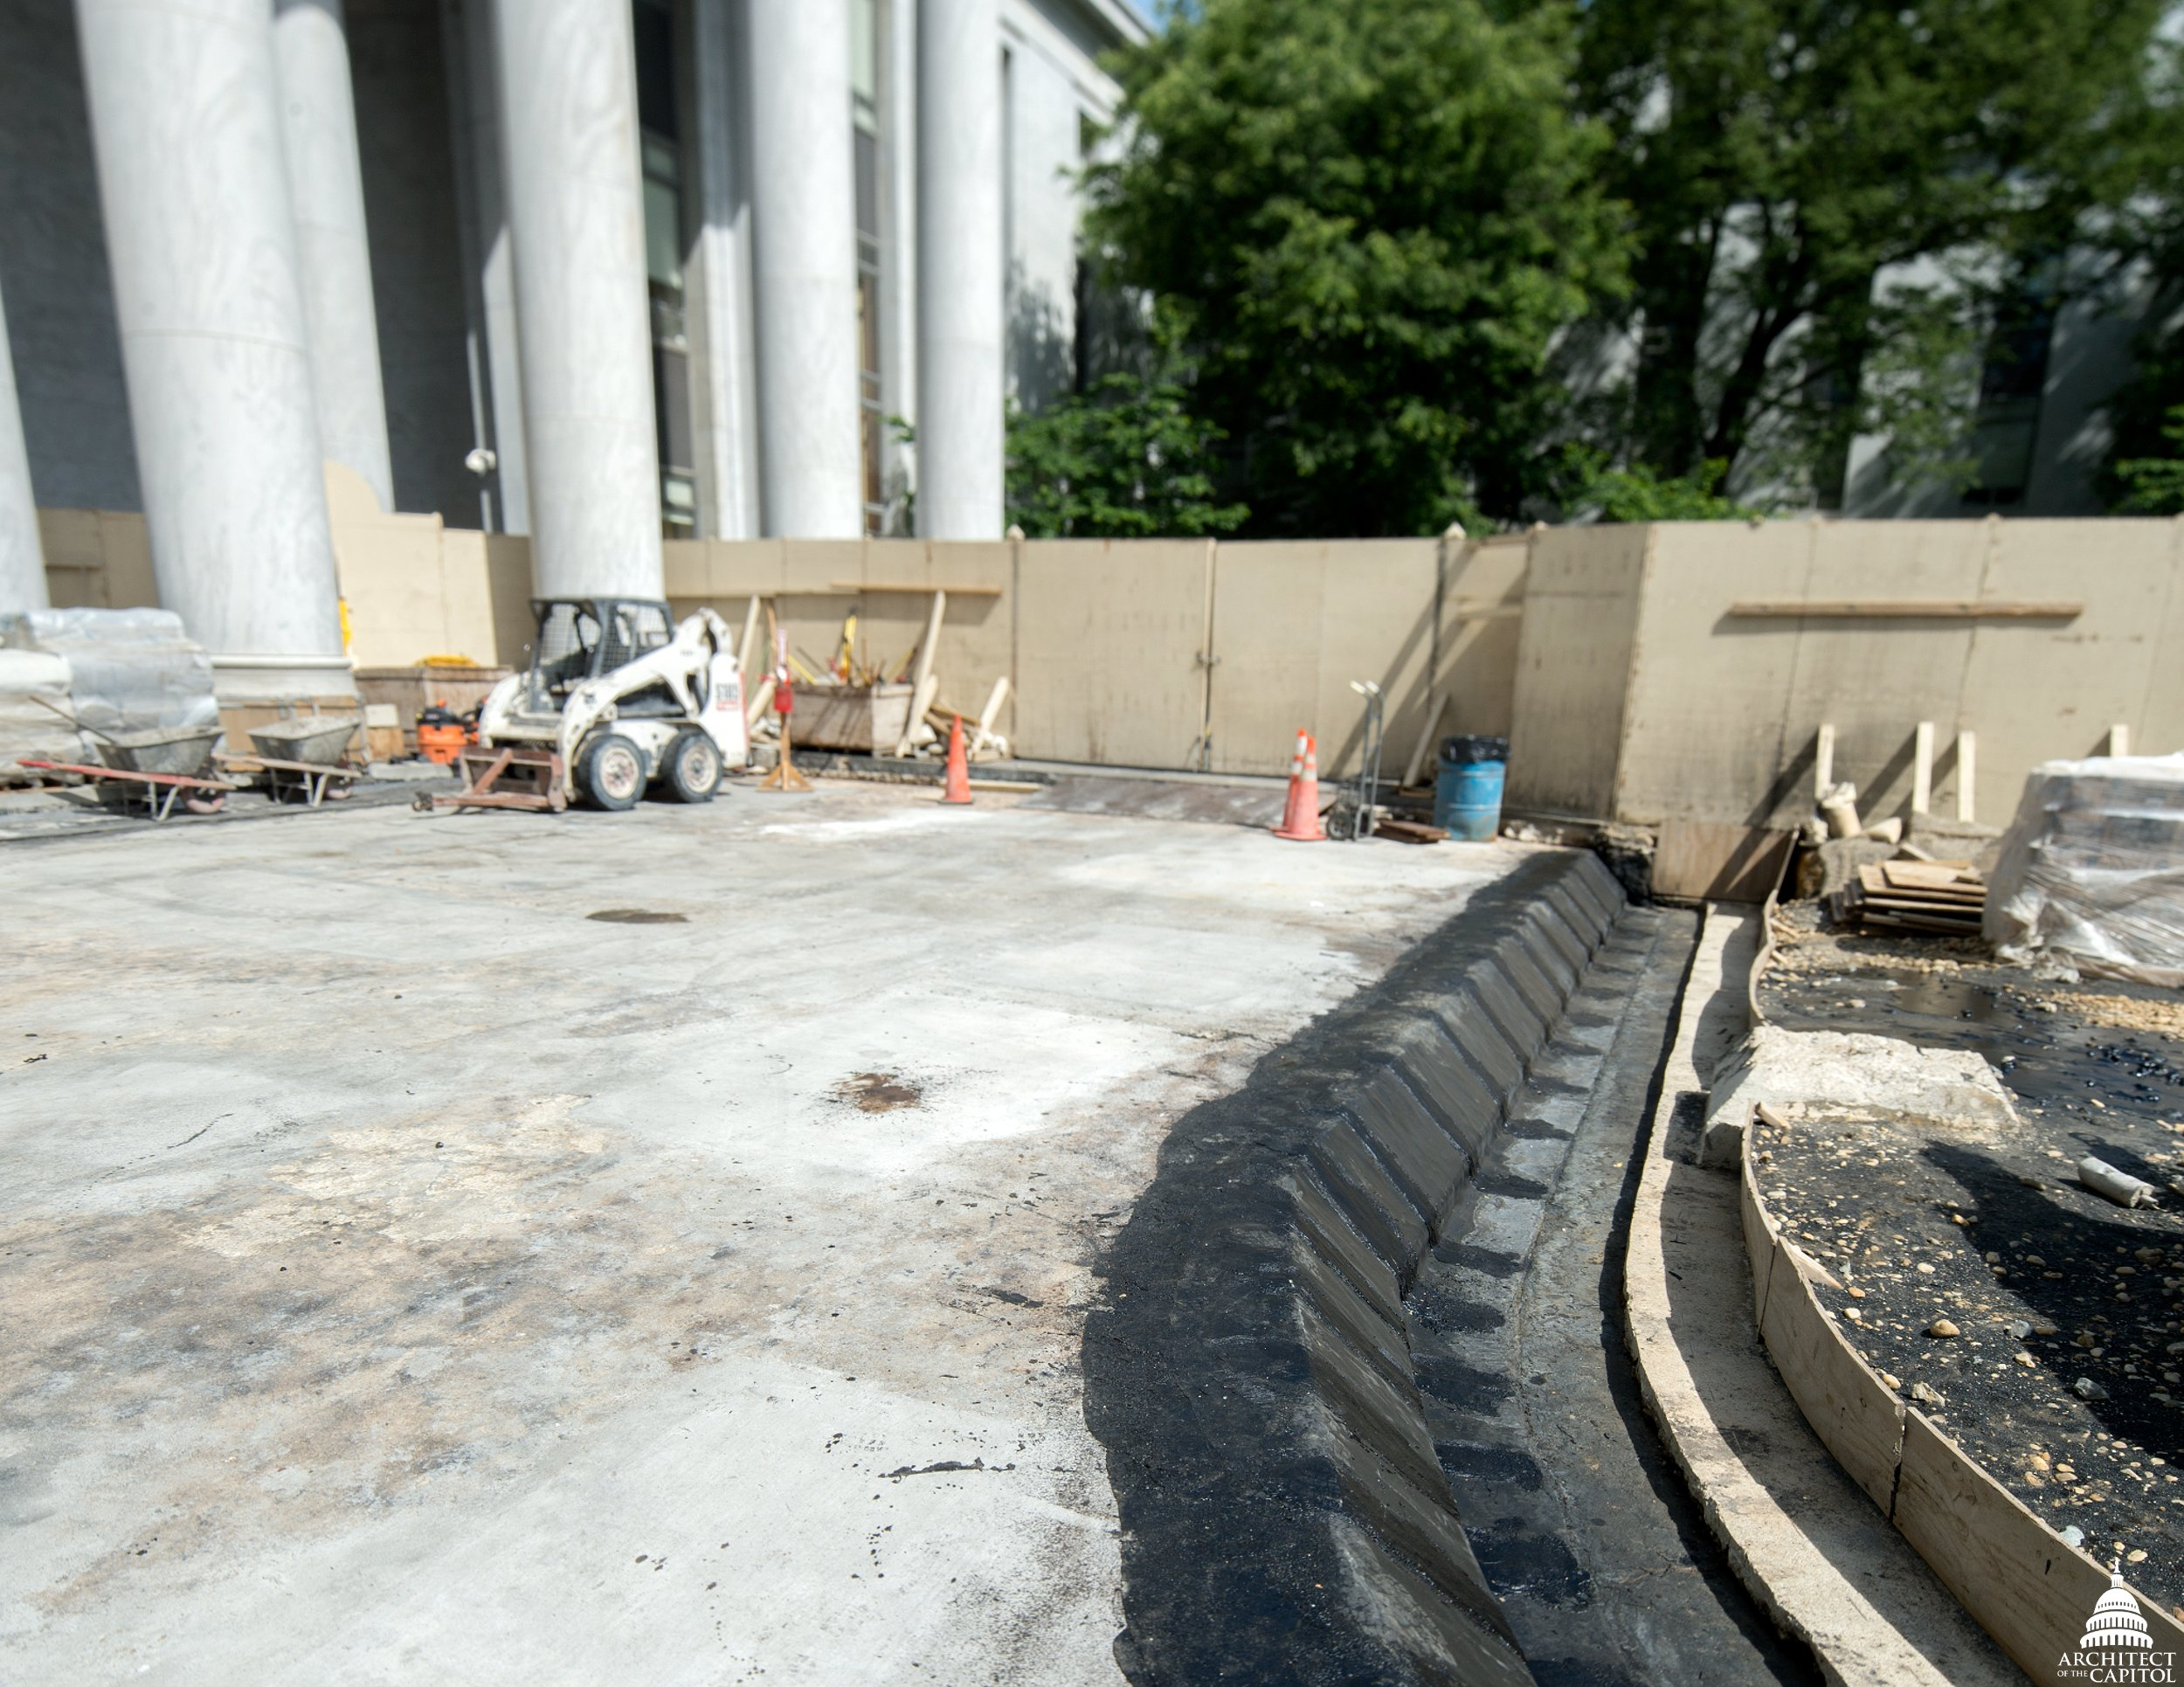 New exterior waterproofing and concrete patches are completed on the Rayburn Horseshoe courtyard.